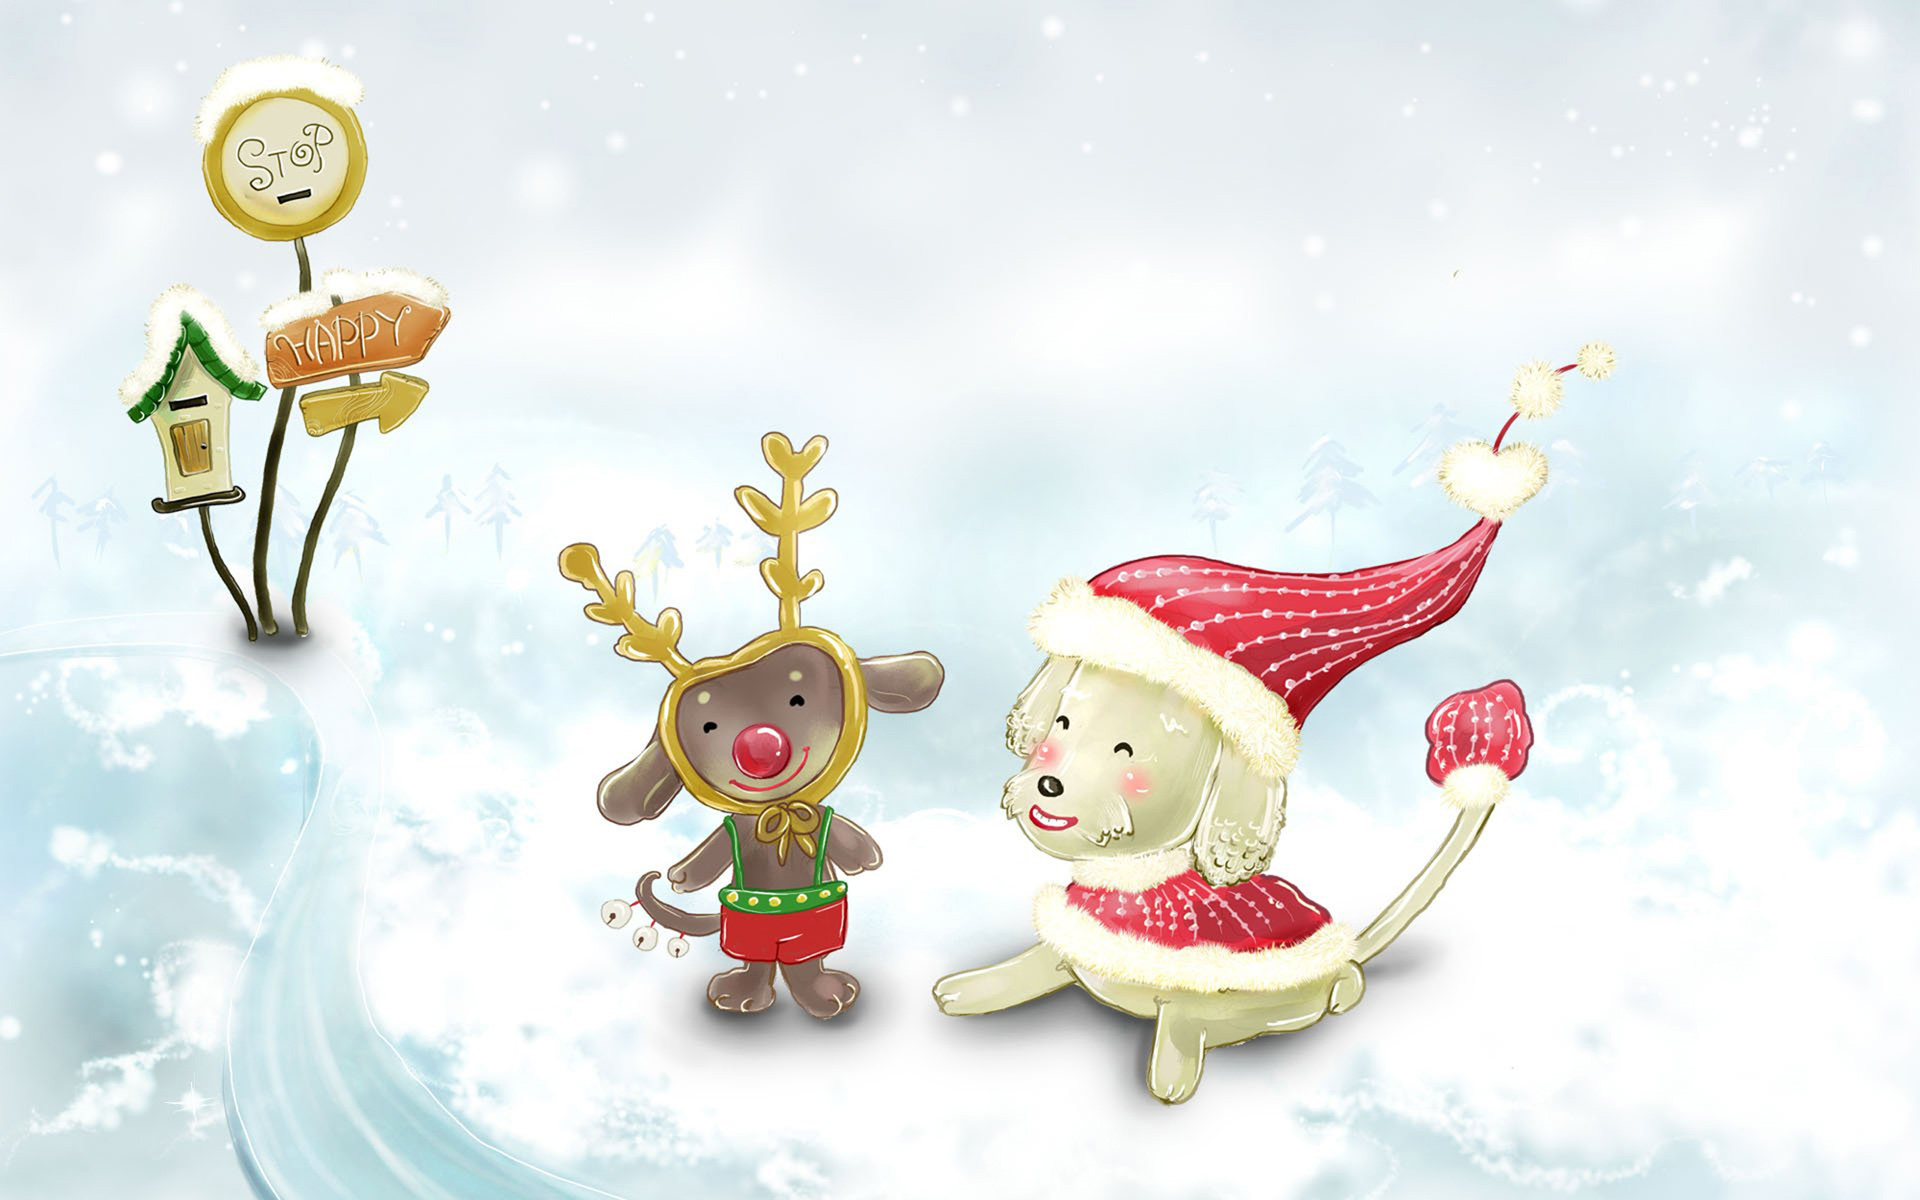 Cute Christmas wallpaper   384393 1920x1200